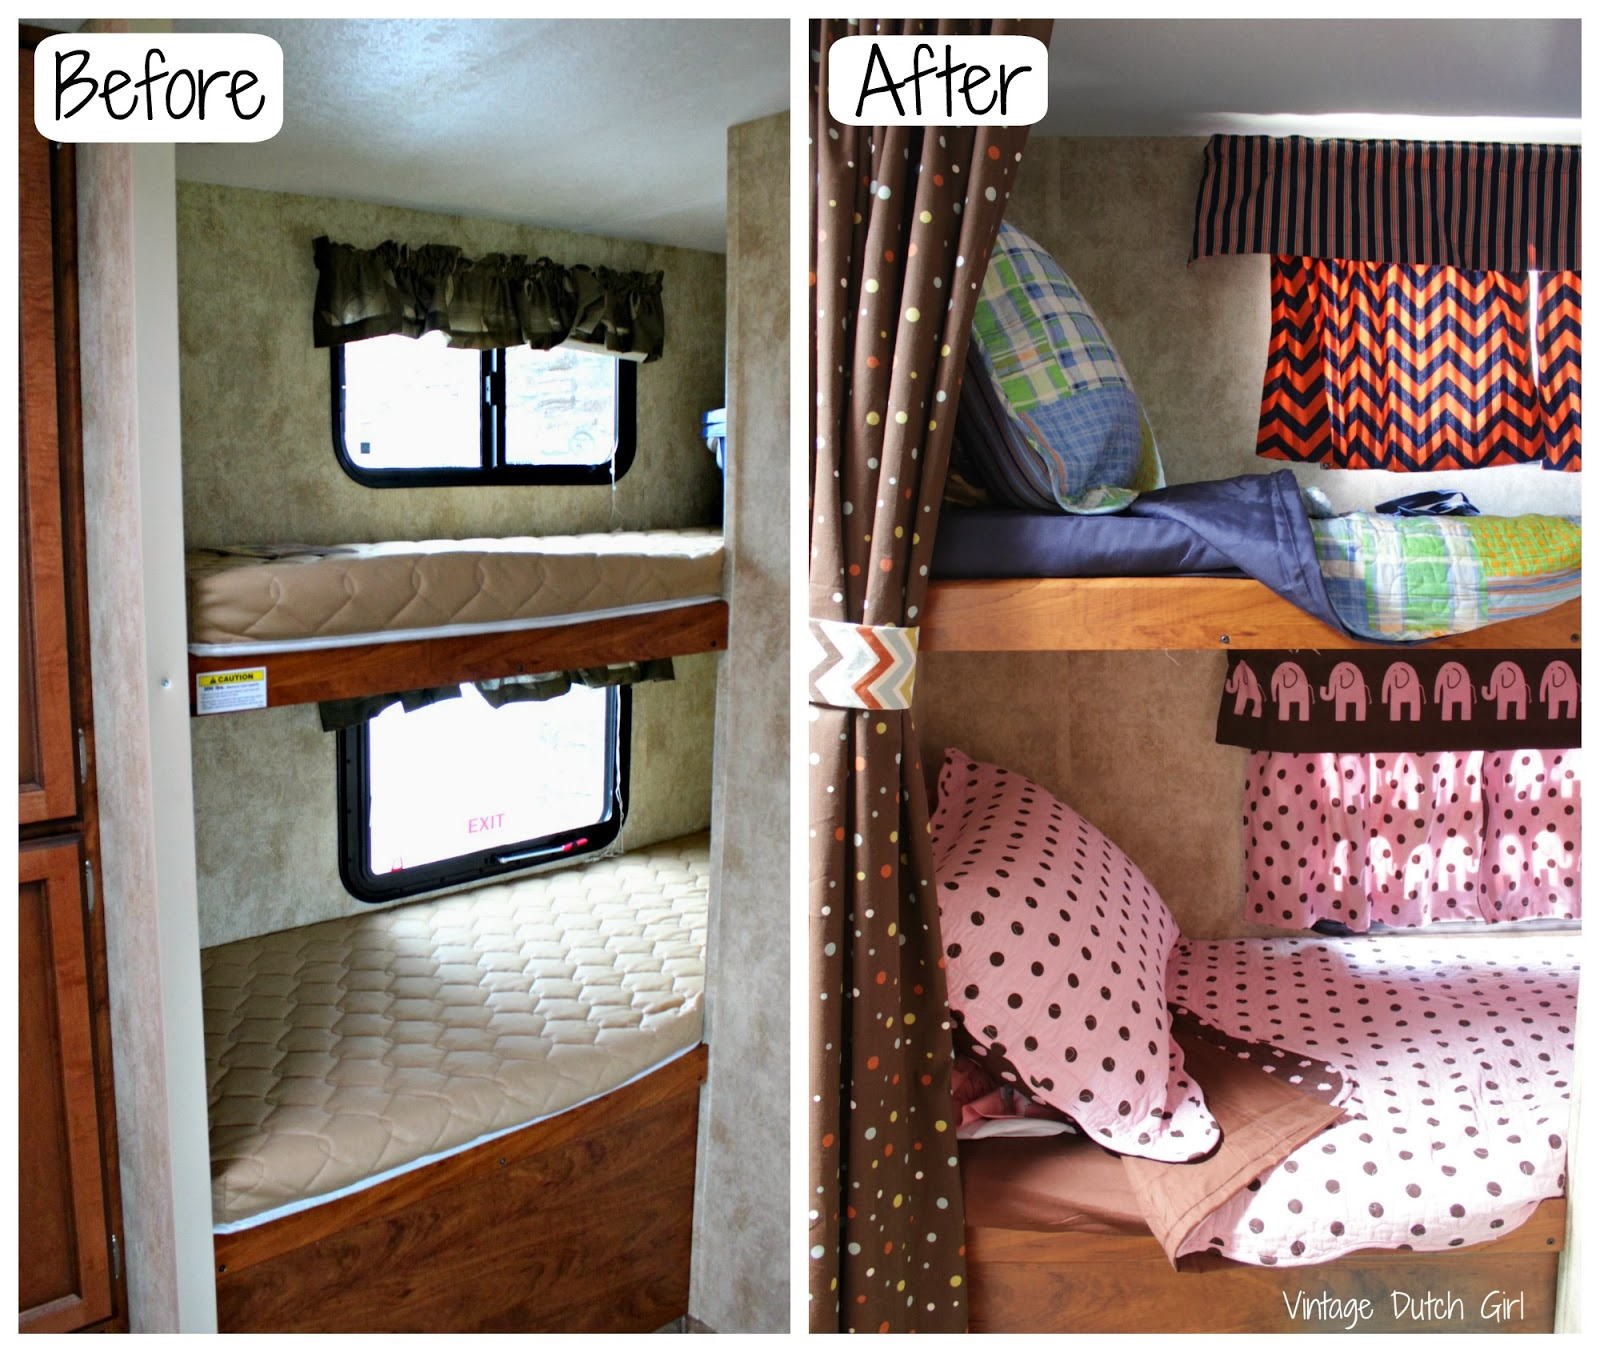 ... and After shot of the bunk bed portion of my Travel Trailer Makeover